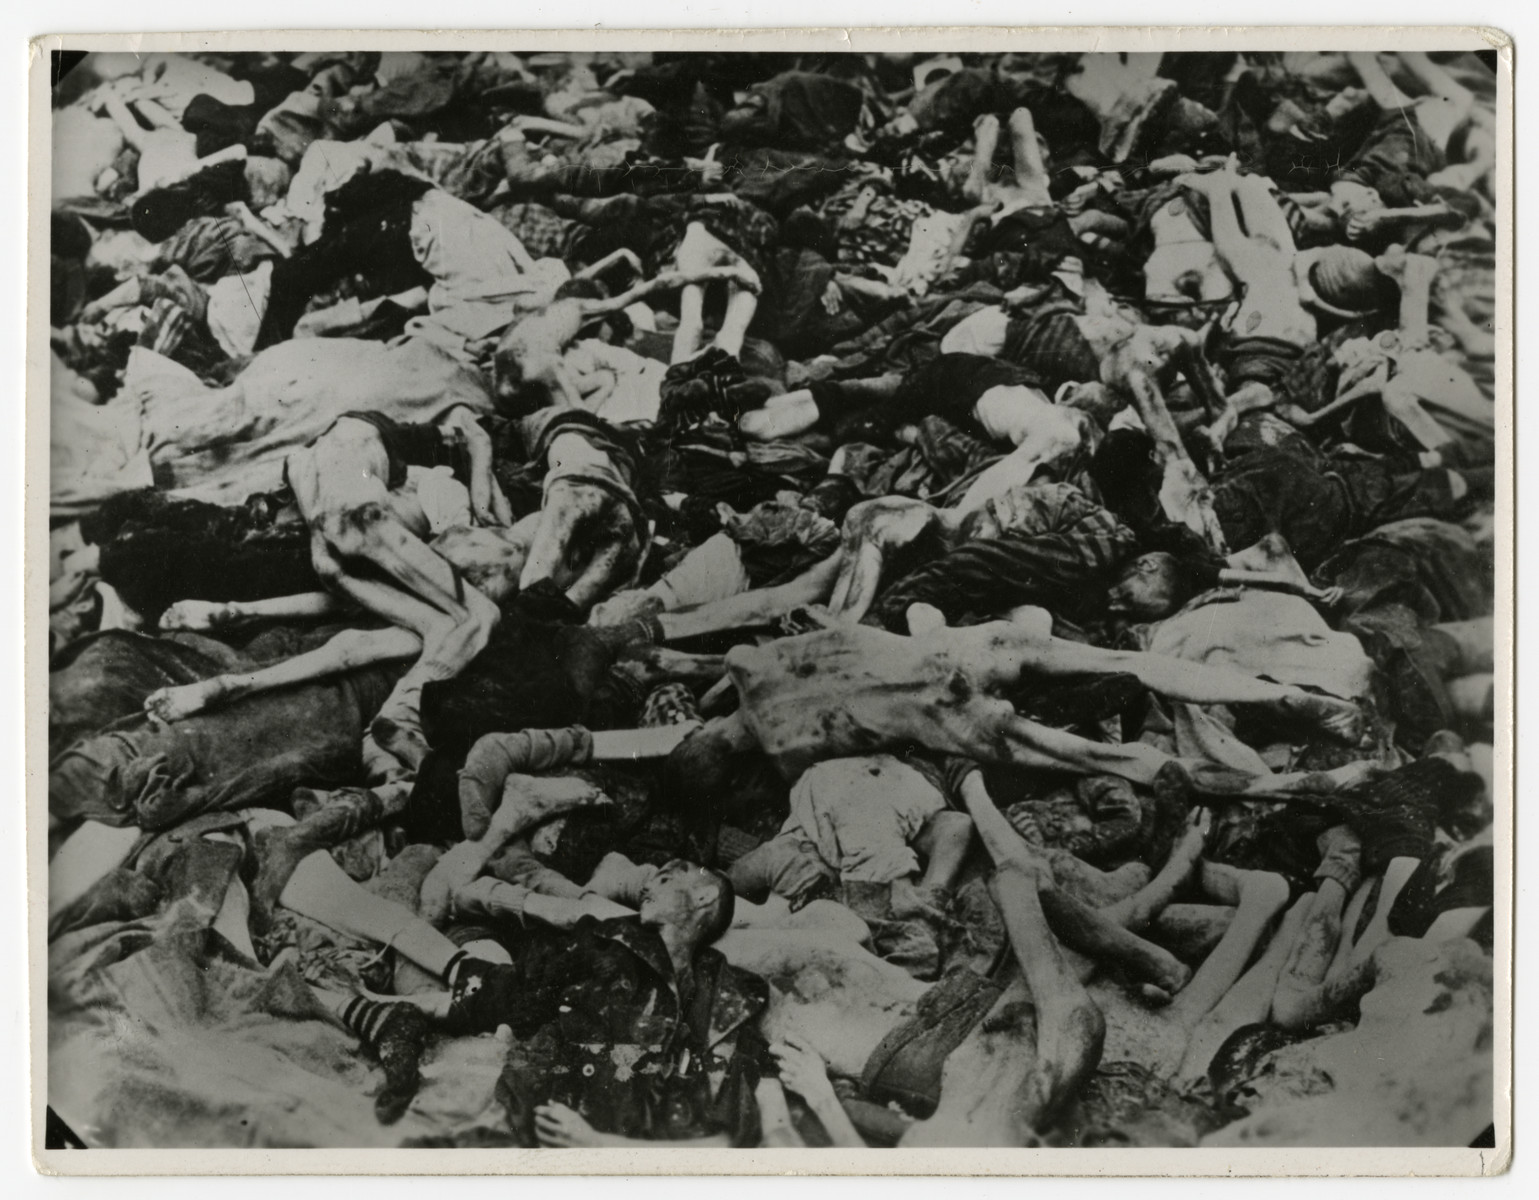 Corpses in an open mass grave in Ohrdruf.